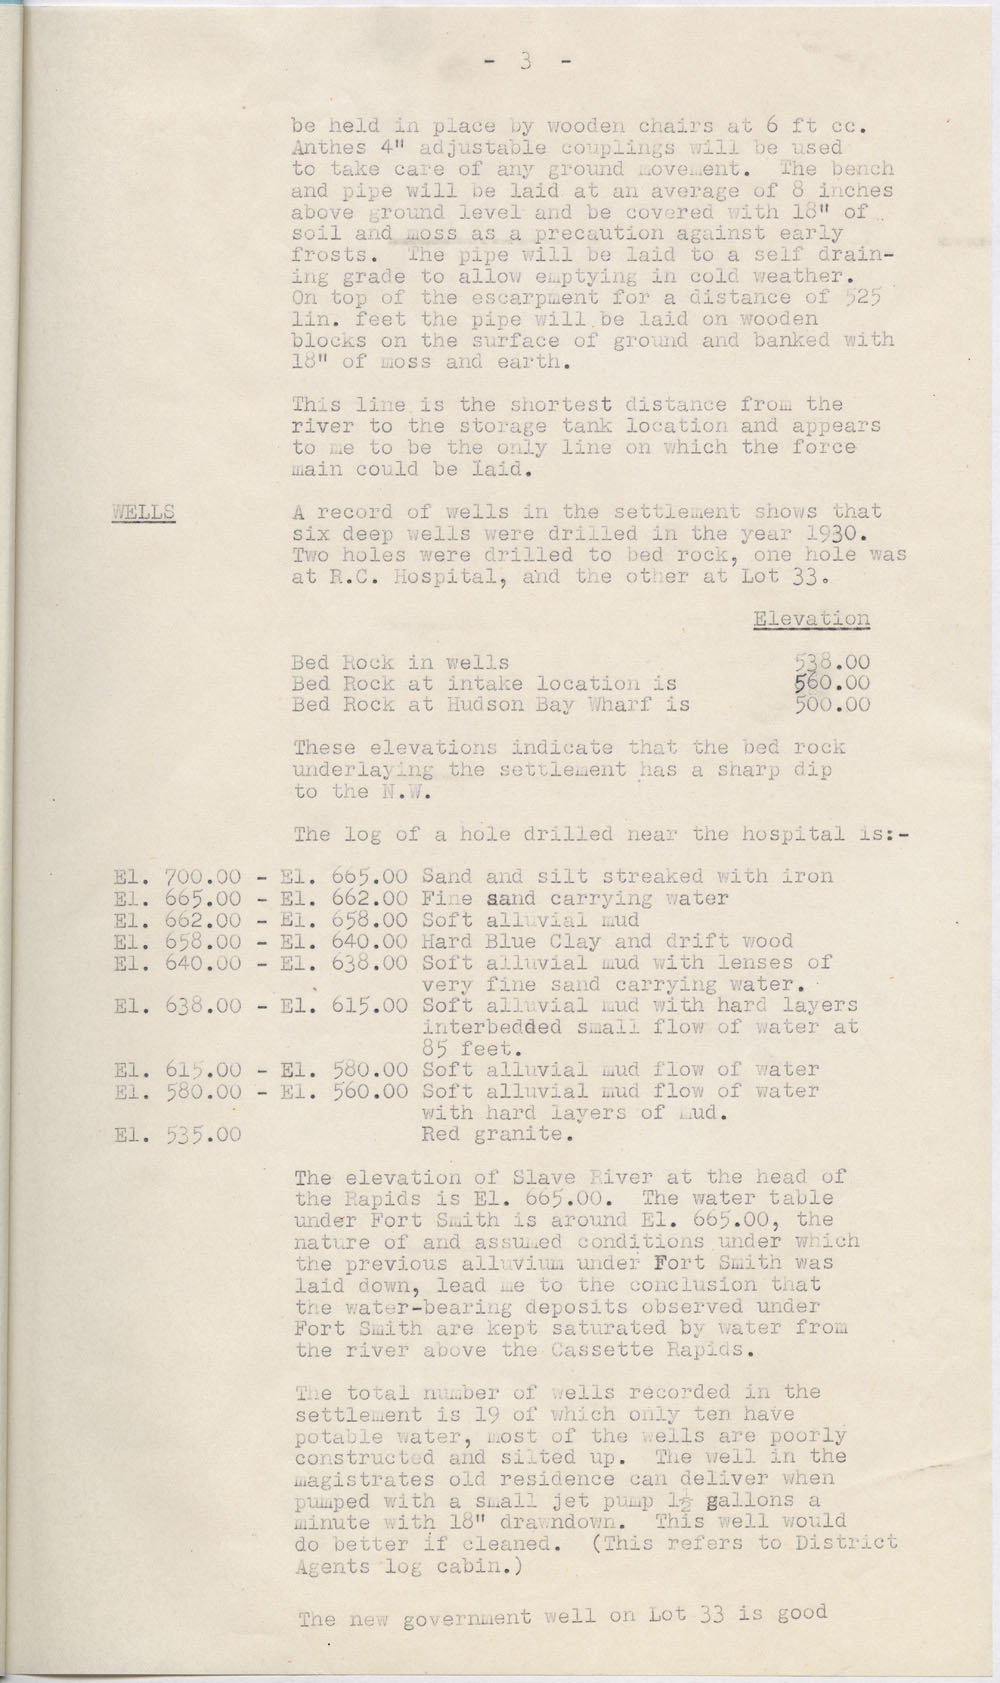 ARCHIVED - Public Works - Canadian Documents Gallery - The Canadian